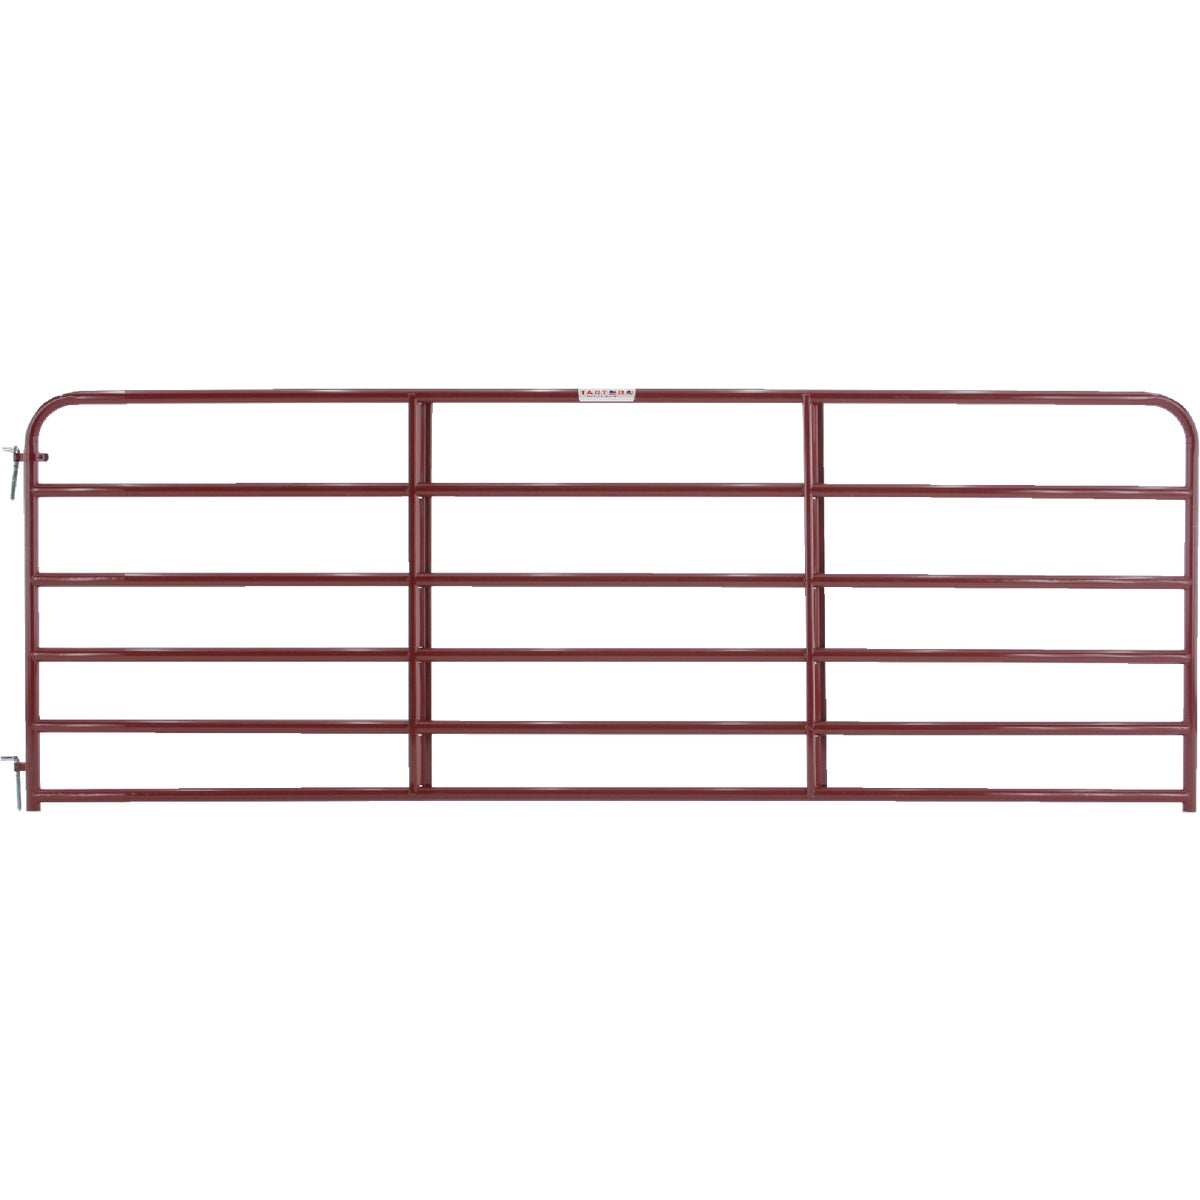 12' 6BAR RED ECONO GATE - 6ER12 by Tarter Llc